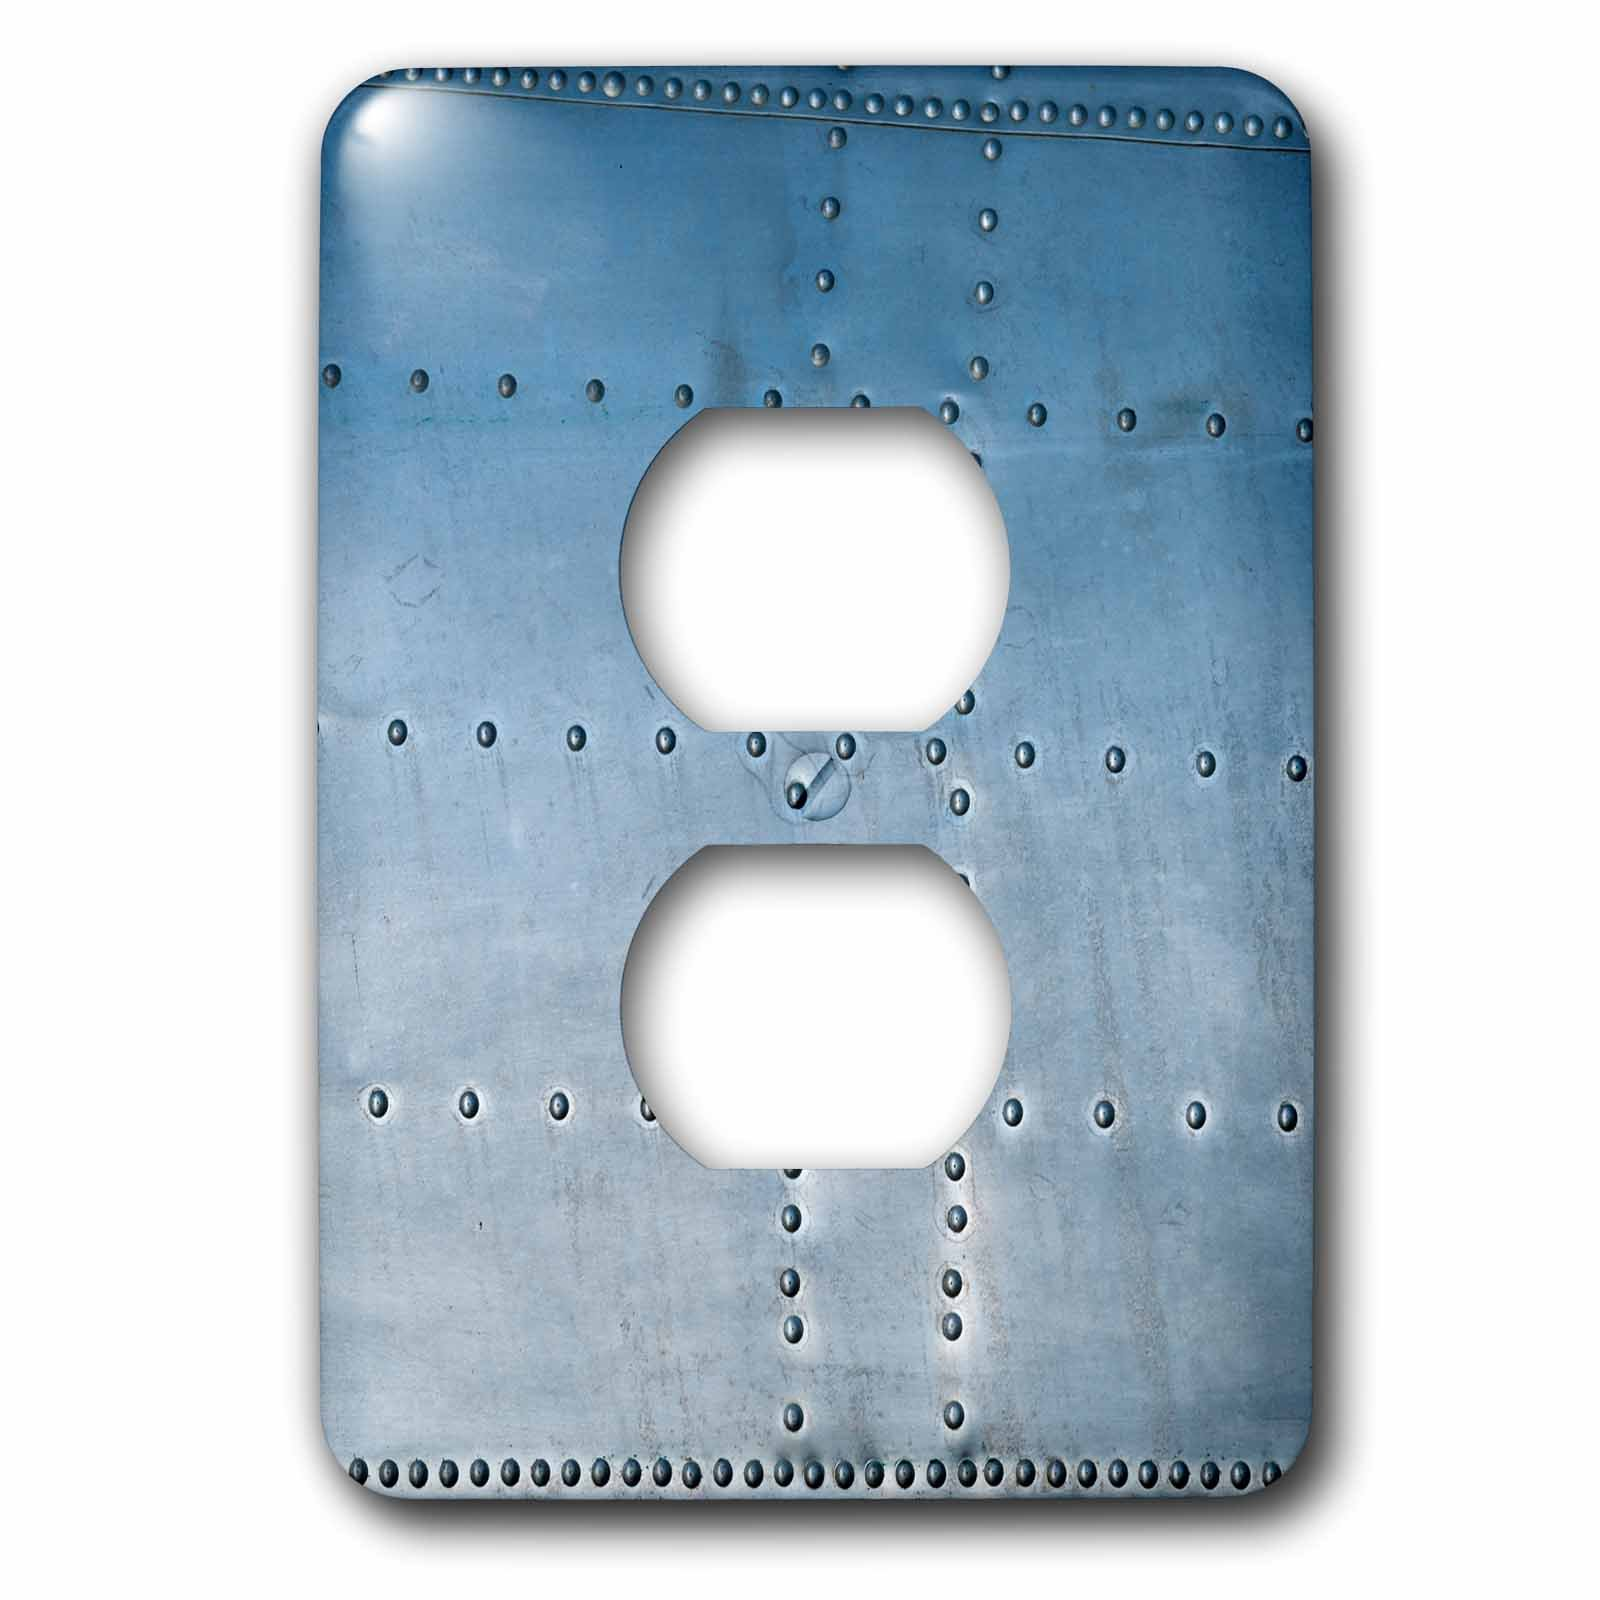 3dRose Alexis Photography - Abstracts of Aviation - Bluish abstract of a vintage aluminum aircraft body. Rivets and seams - Light Switch Covers - 2 plug outlet cover (lsp_272044_6)